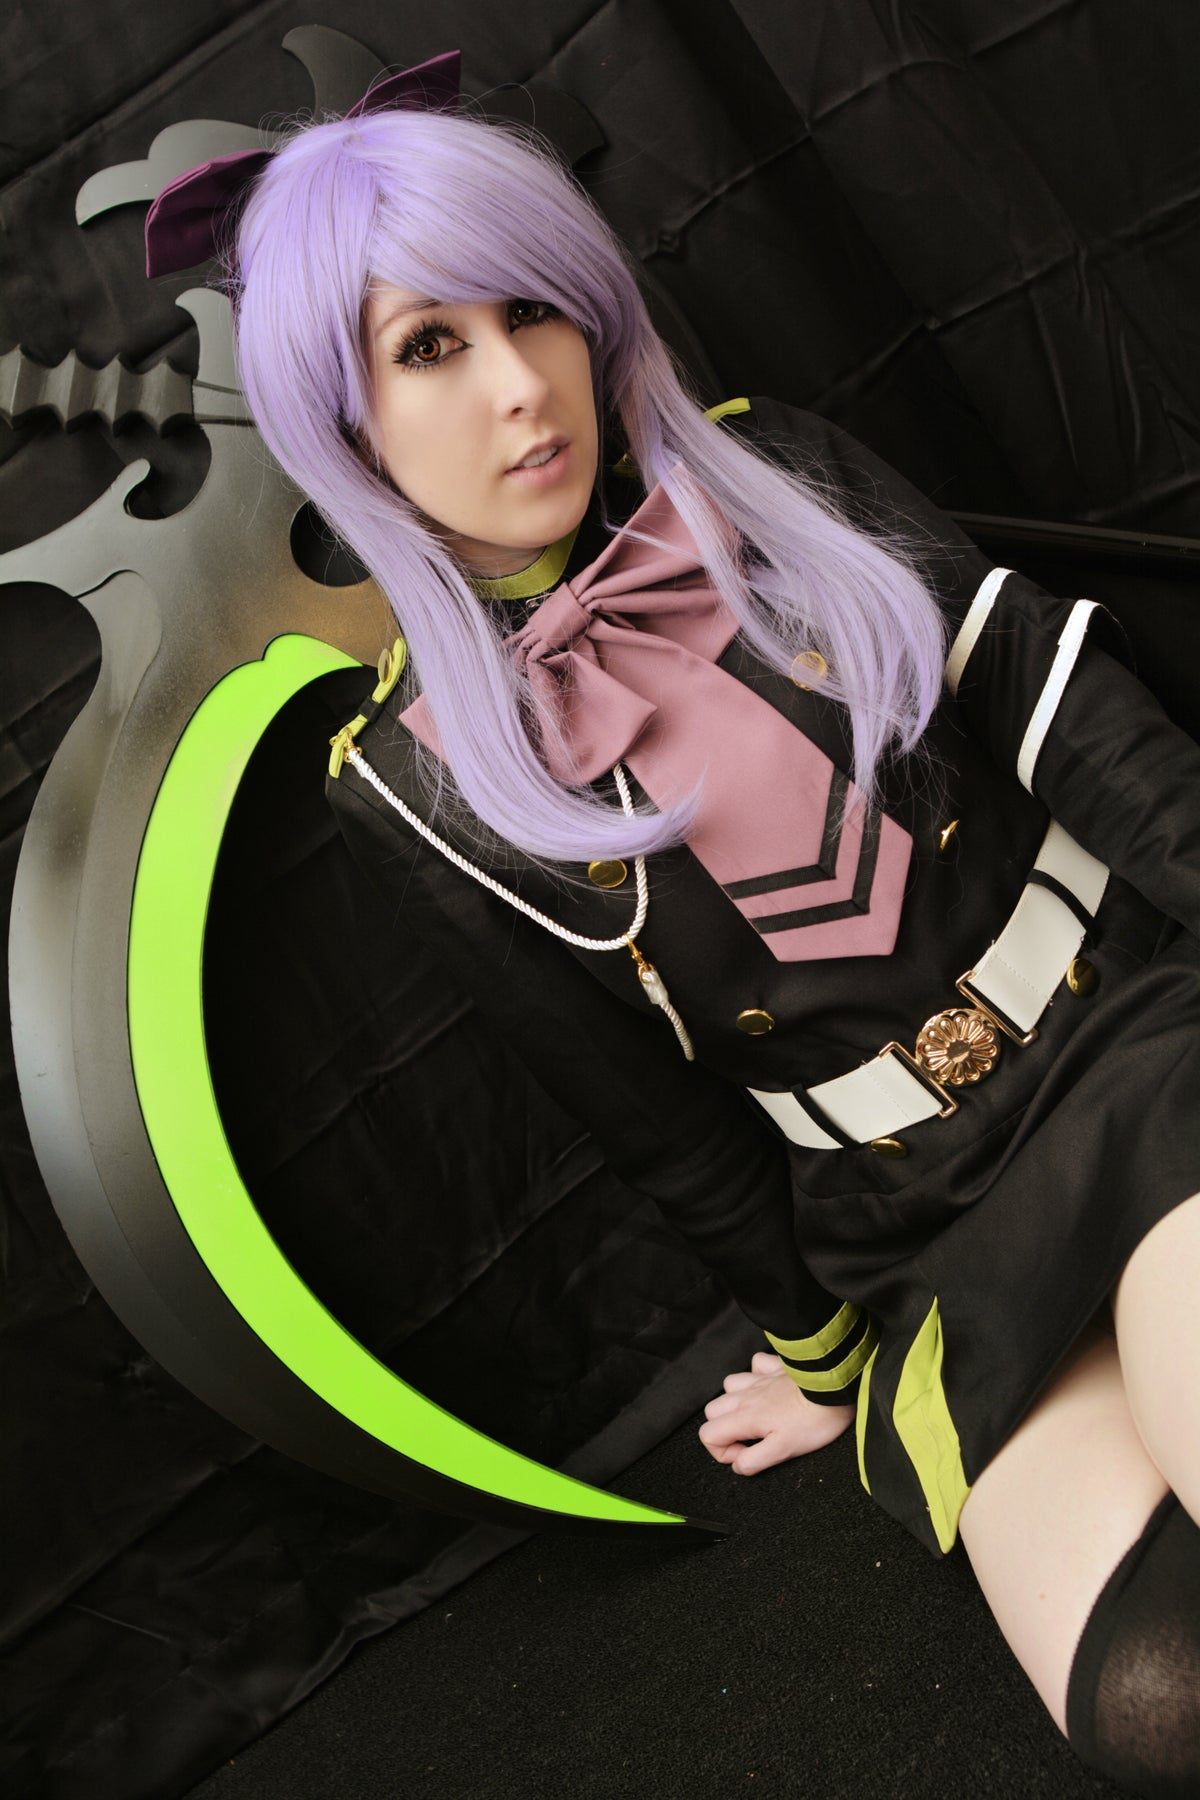 Image of Shinoa Hiiragi Photoset